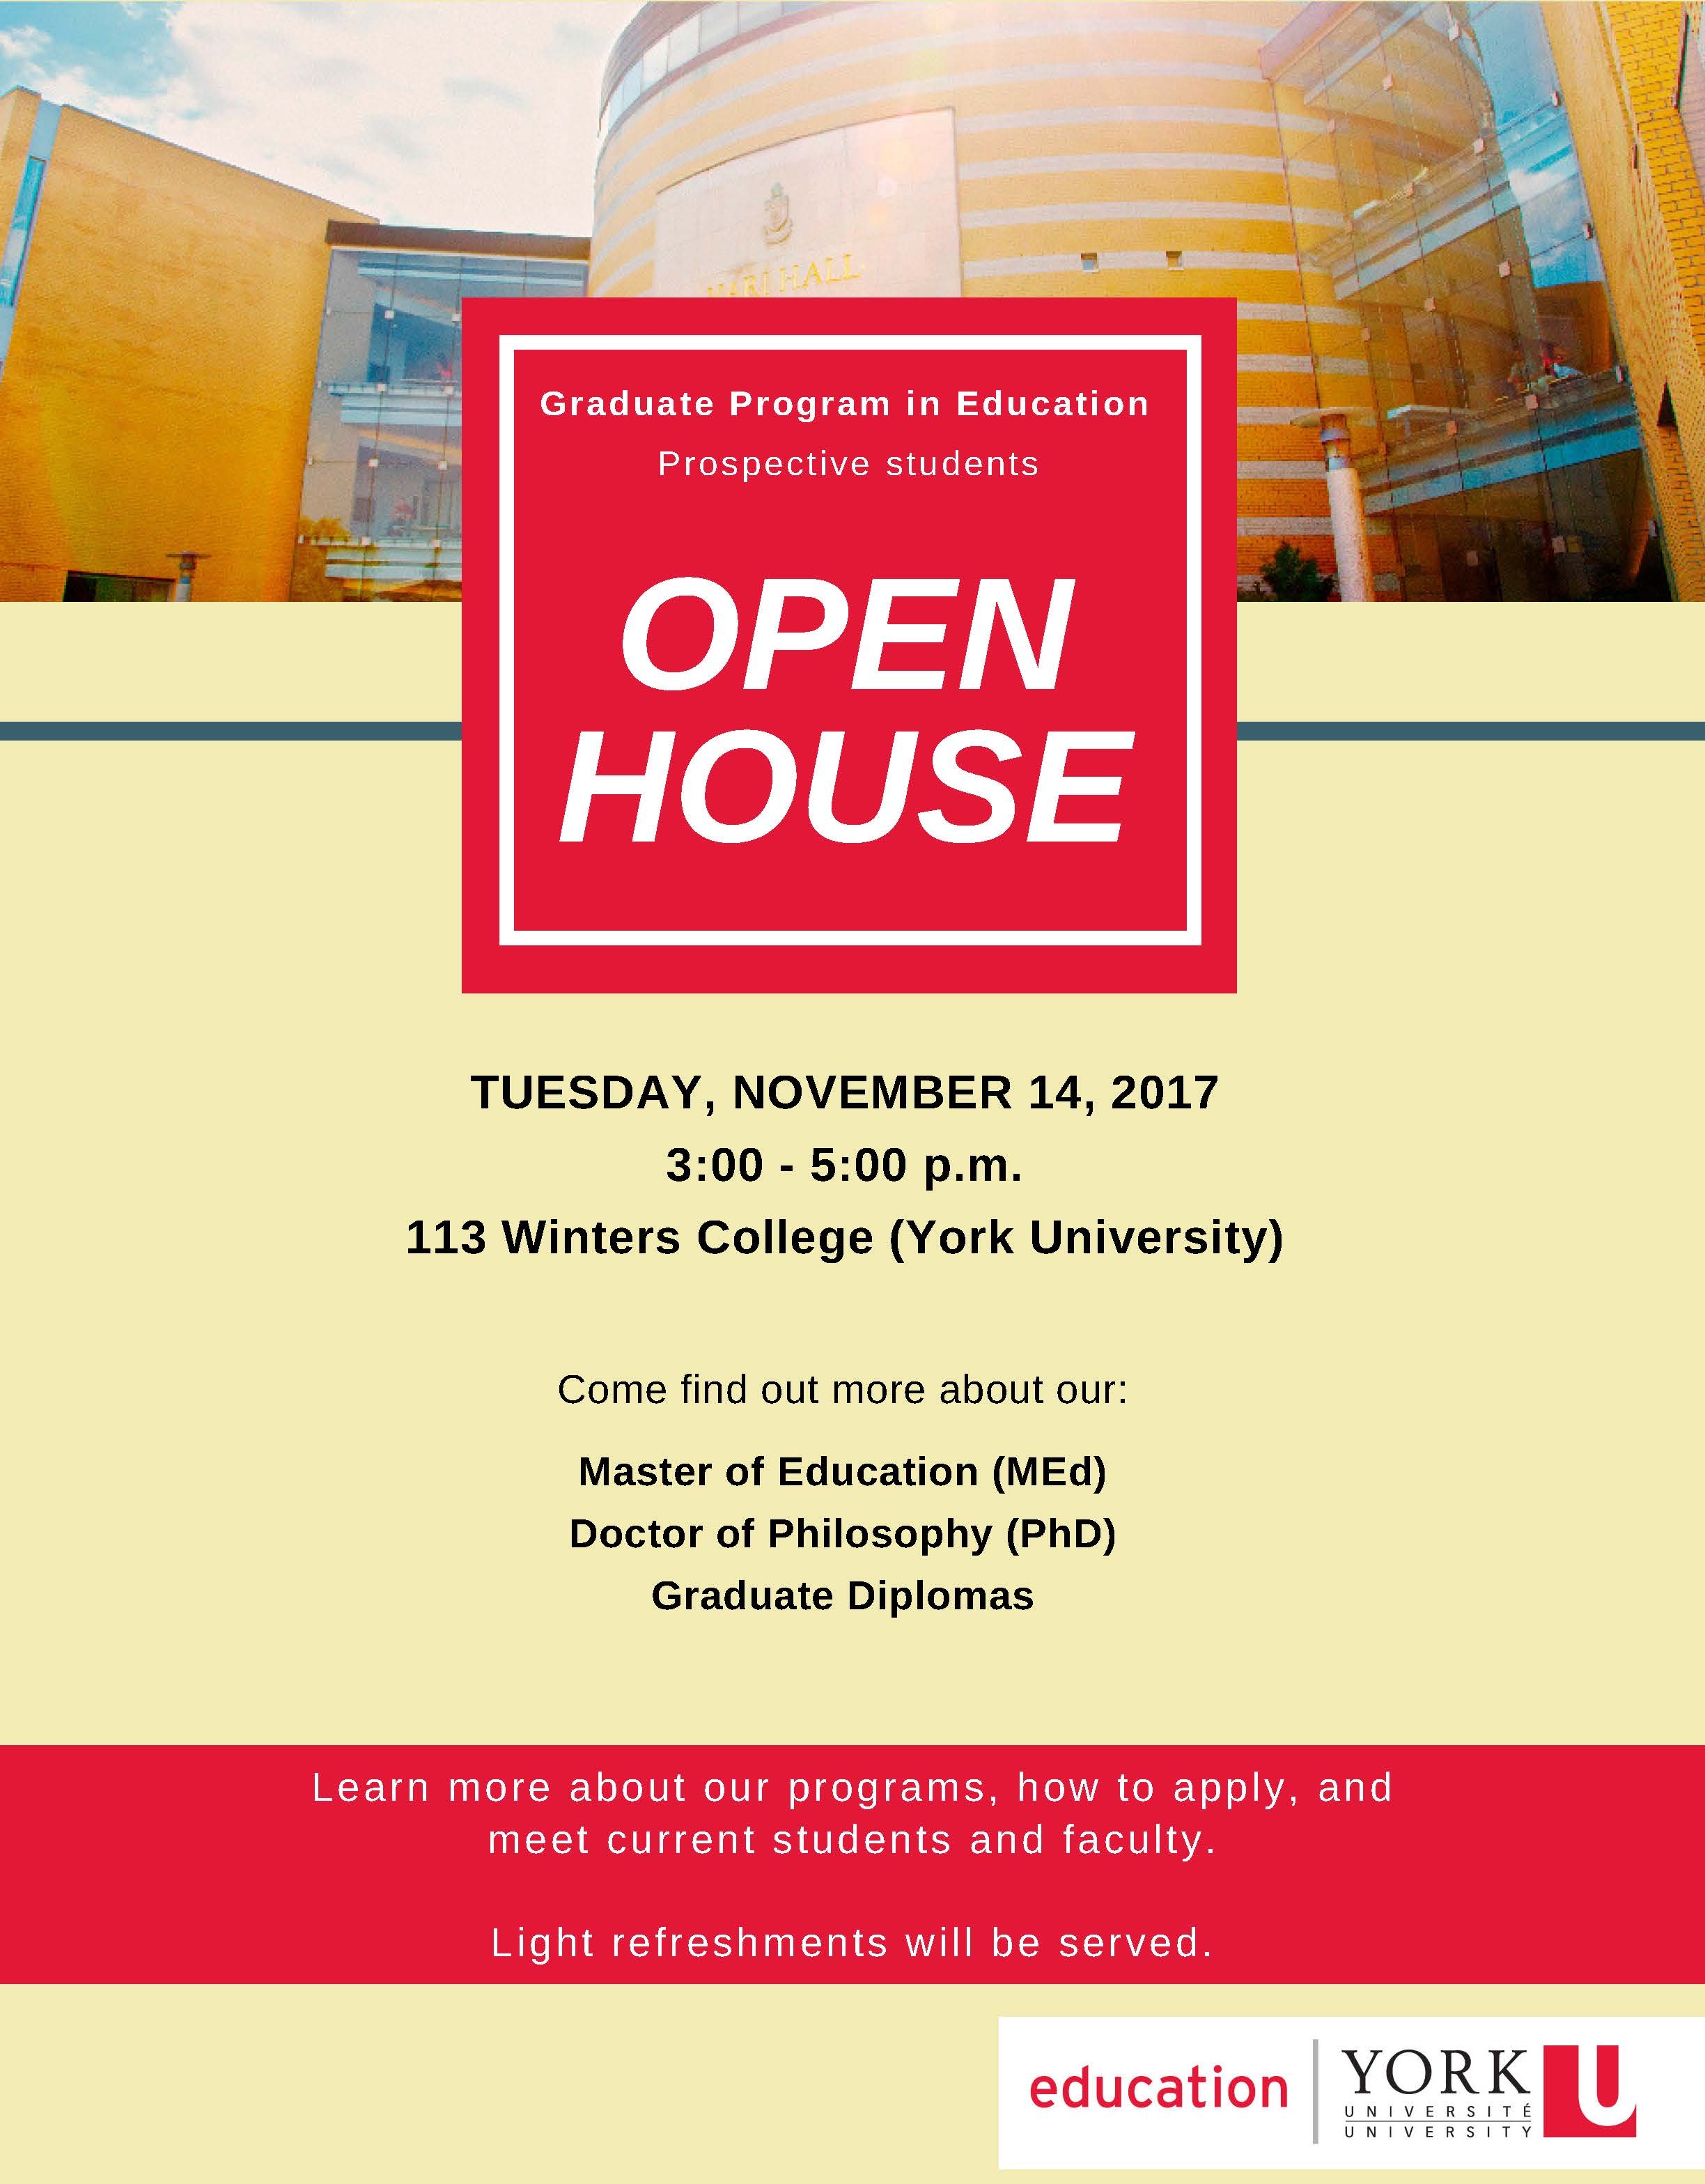 Graduate Program in Education OPEN HOUSE @ Room 115 Winters College (Graduate Program in Education Office) | Toronto | Ontario | Canada